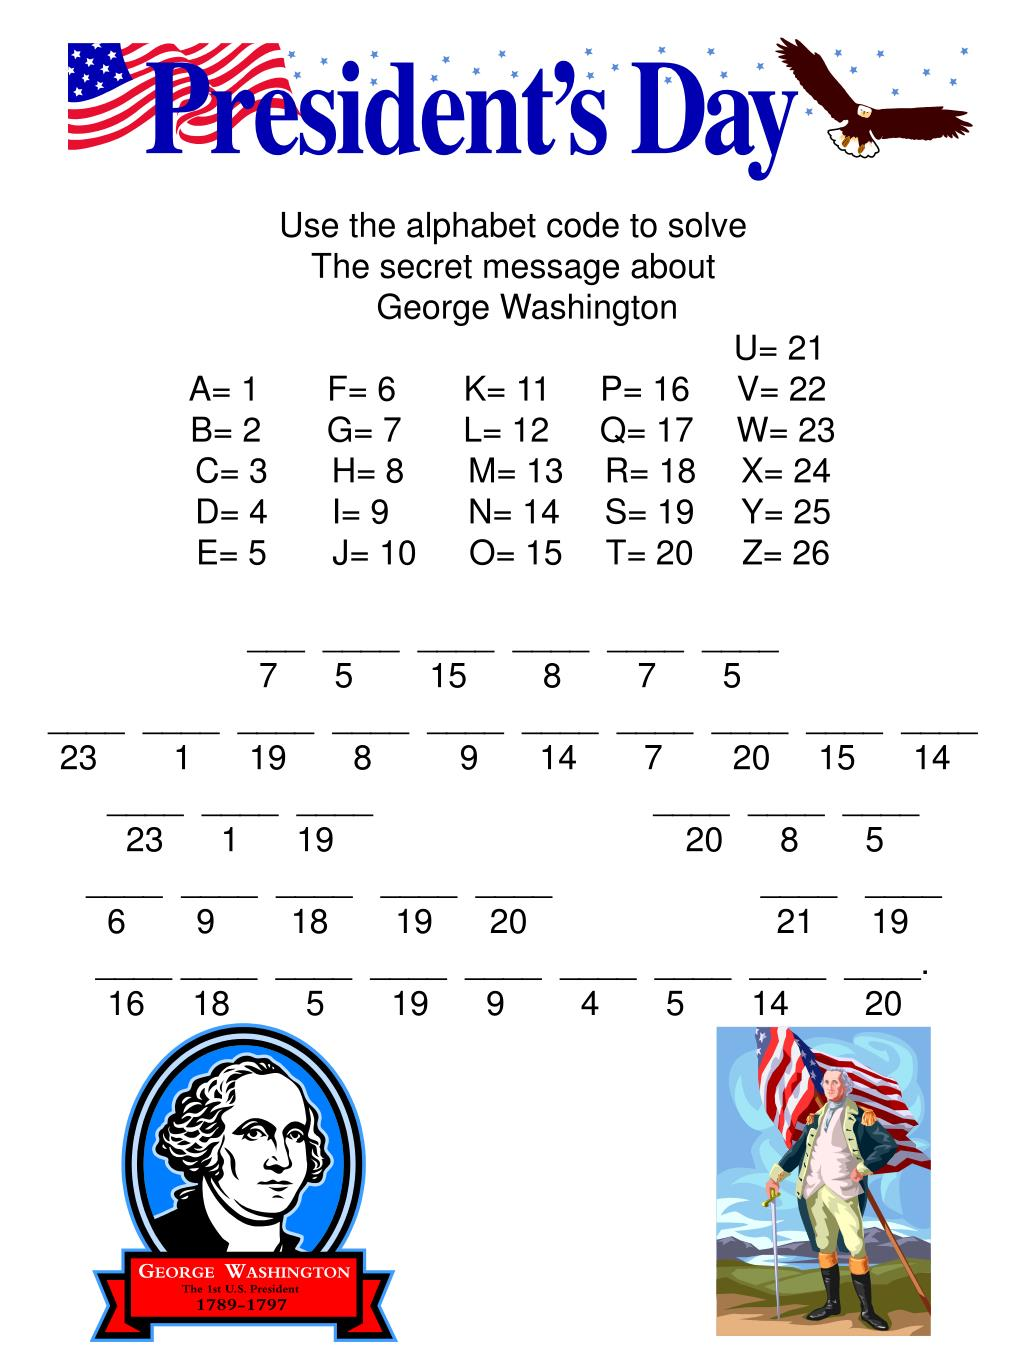 Use the alphabet code to solve